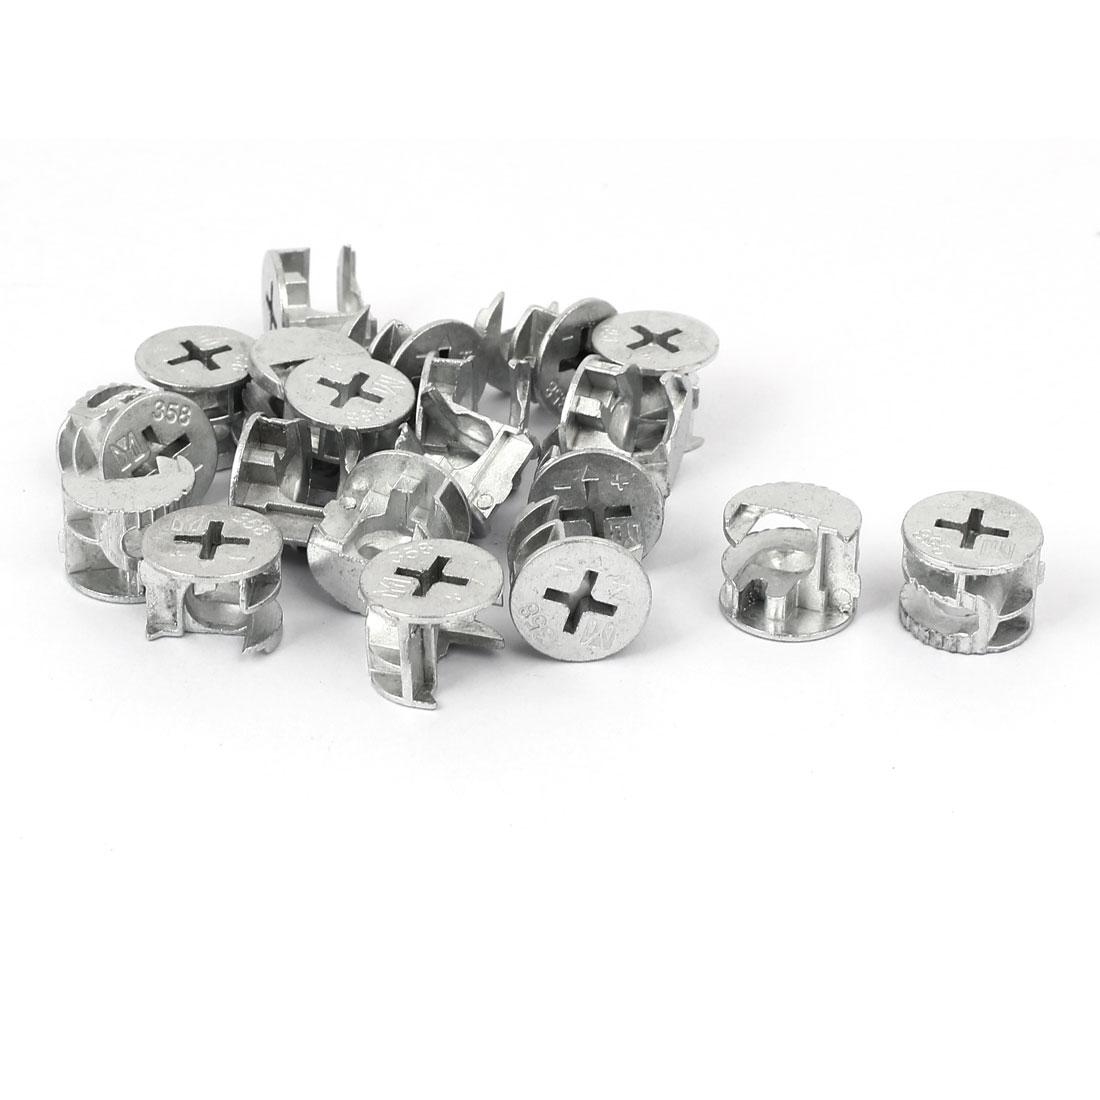 15mm Dia Furniture Cabinets Metal Cam Fittings Connectors 20pcs